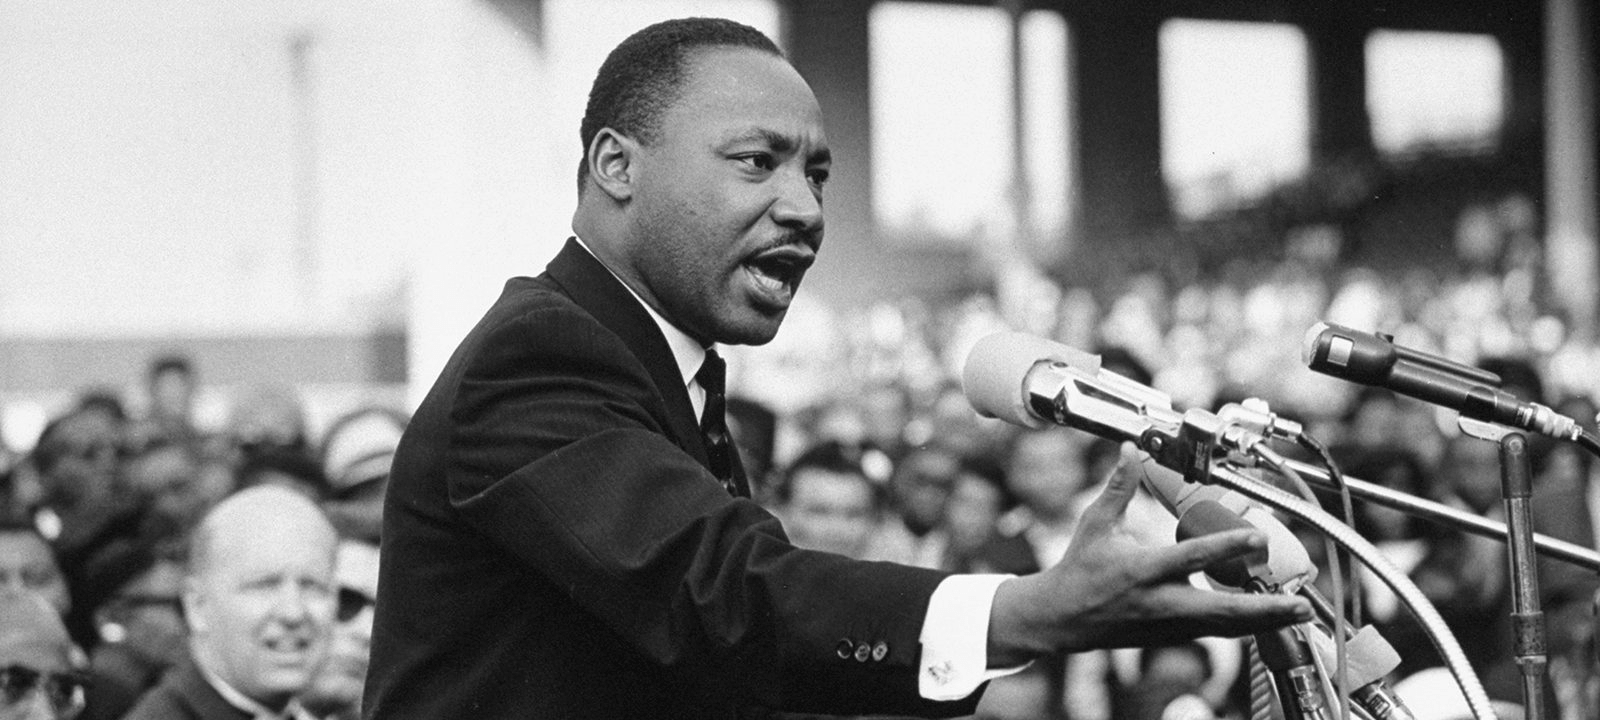 Martin Luther King Jr. explained that a riot is the language of the unheard